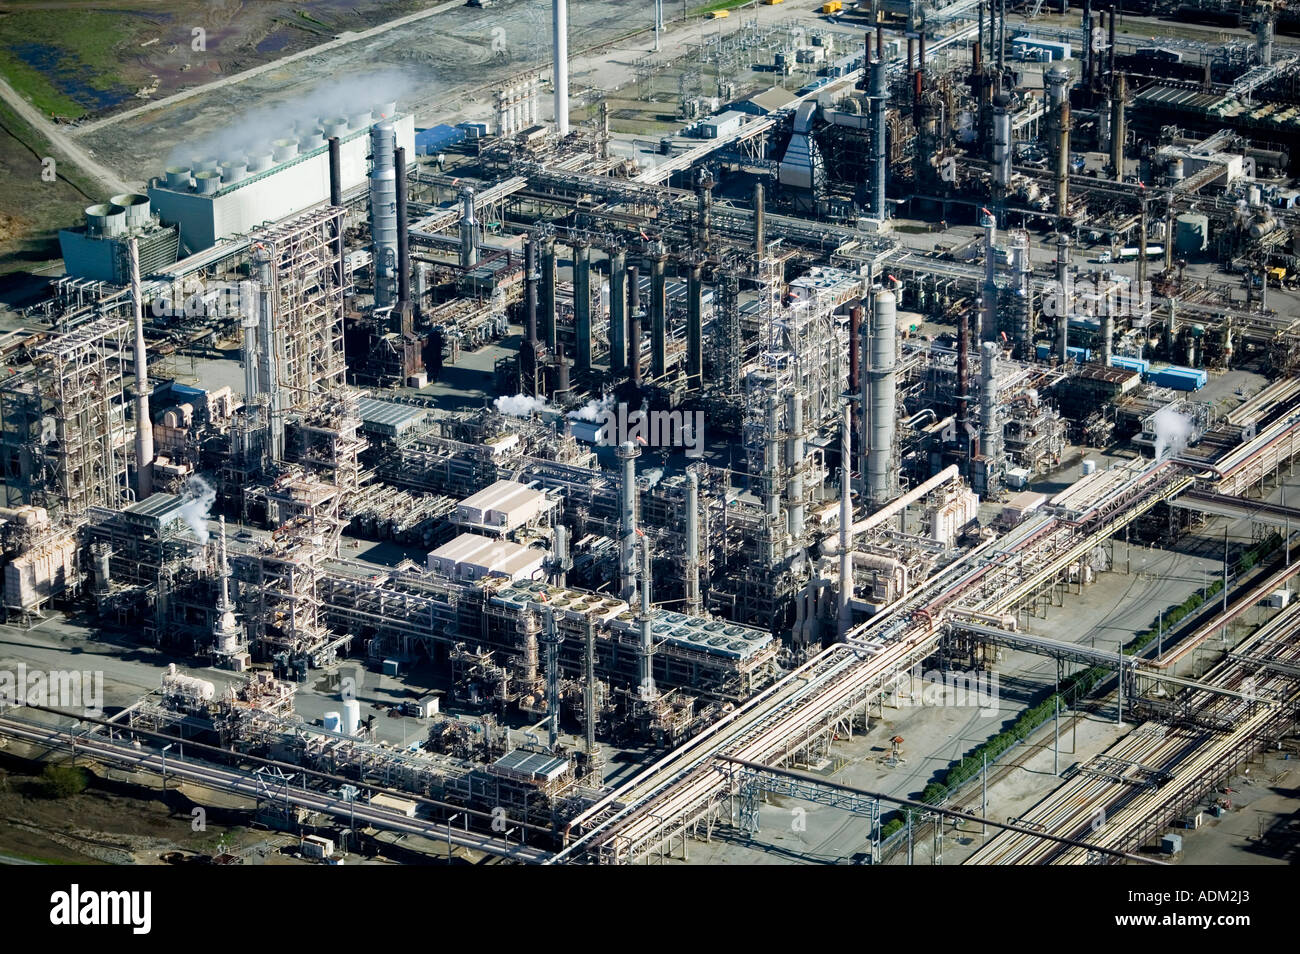 Aerial photograph of Chevron refinery, in Richmond, California, San Francisco Bay Stock Photo